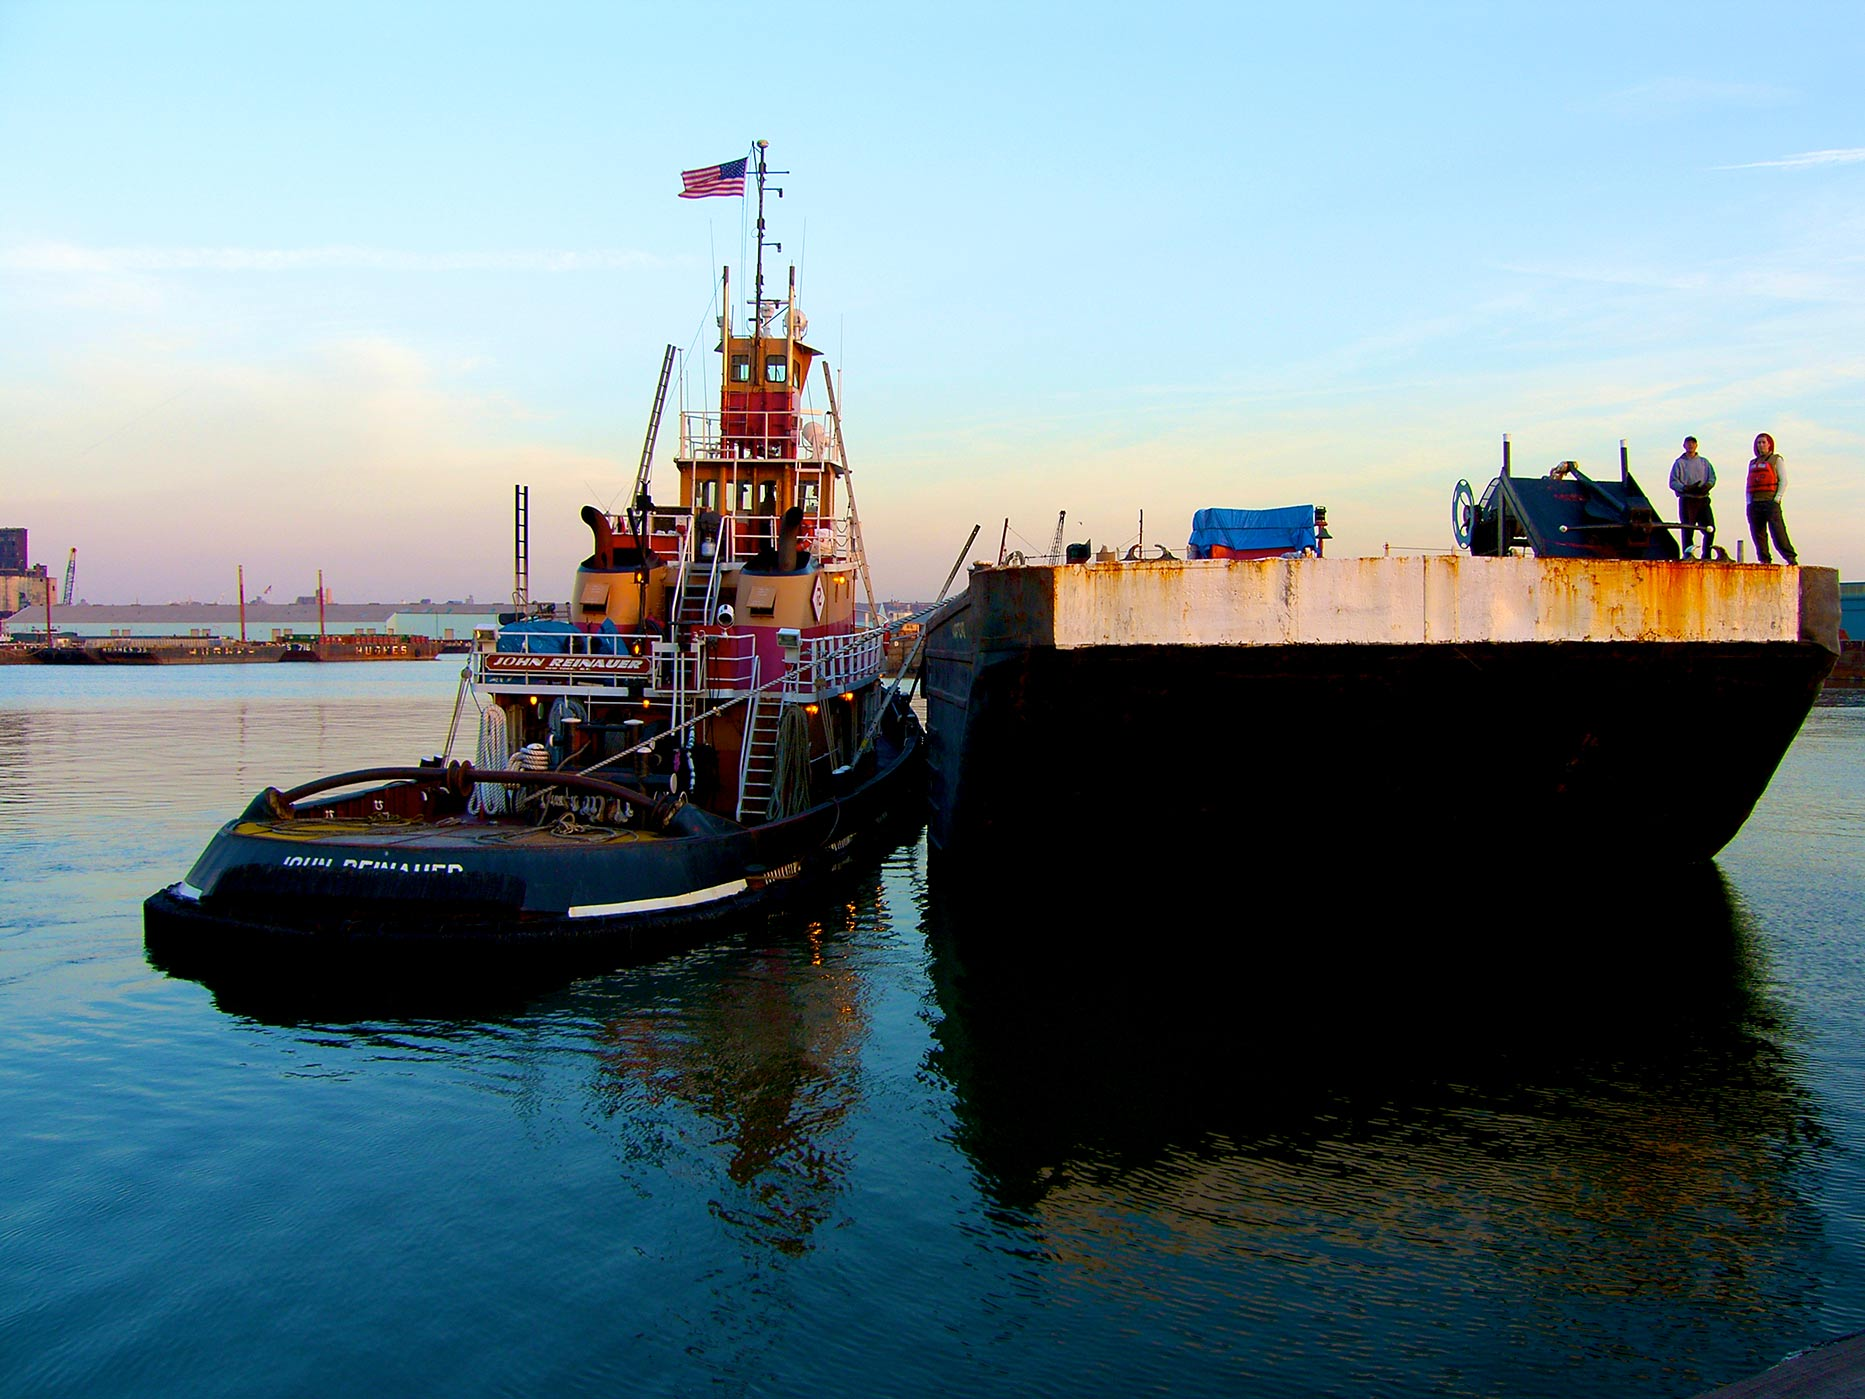 Tugboat_and_Barge_in_Eire_Basin